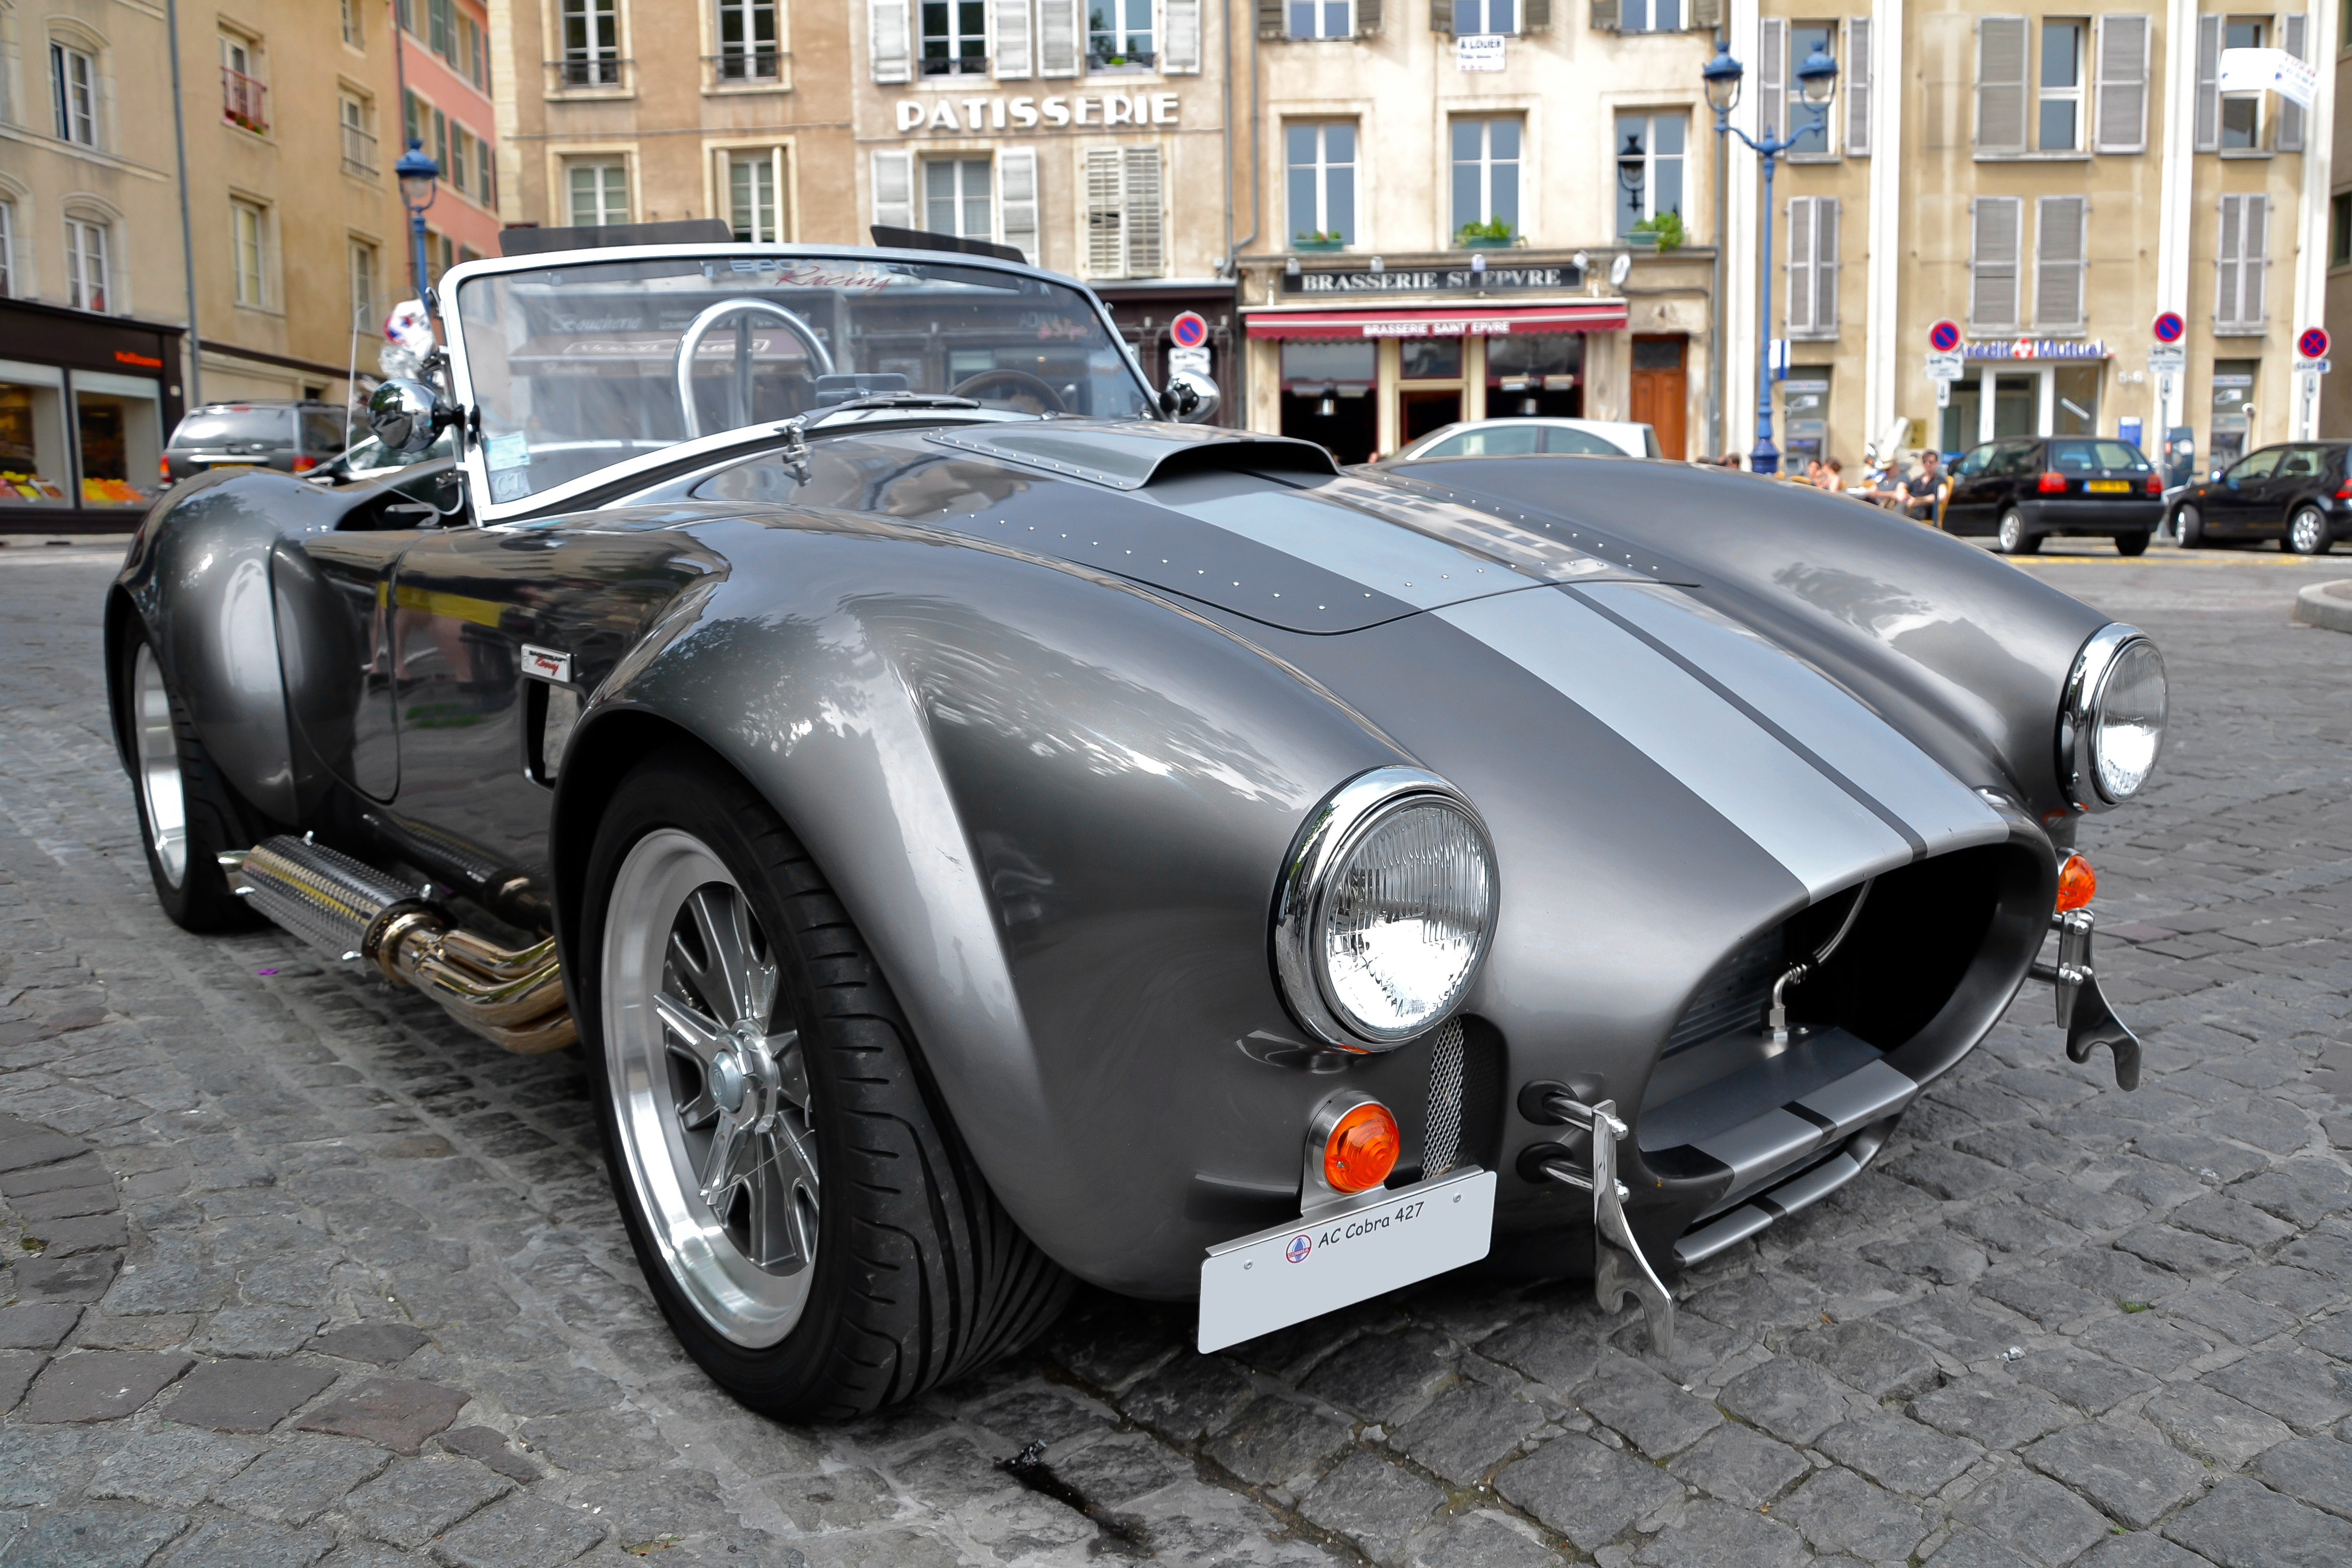 AC Cobra 427 14 Record-Setting Supercars That Made an Impression